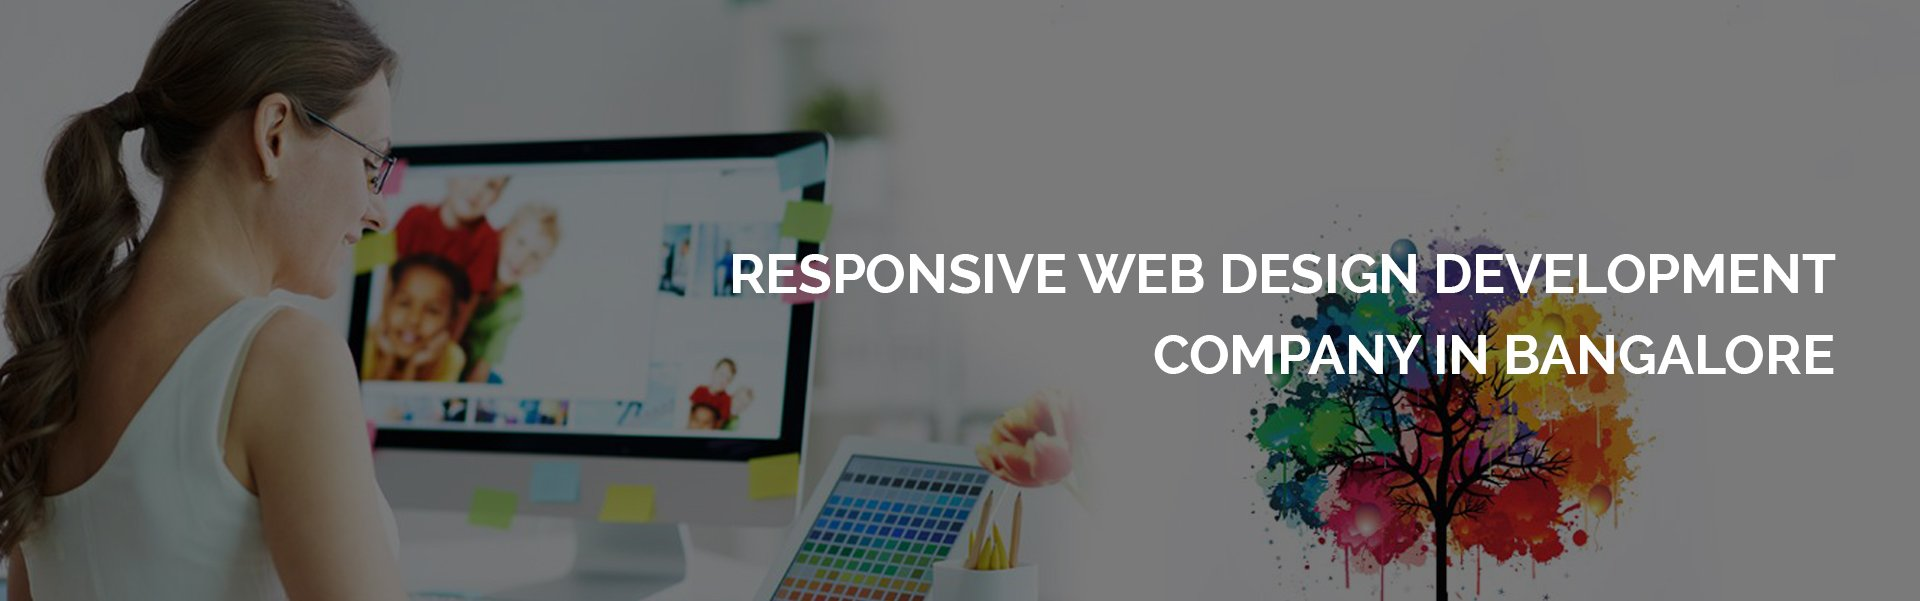 responsive-web-design-development-company-in-bangalore